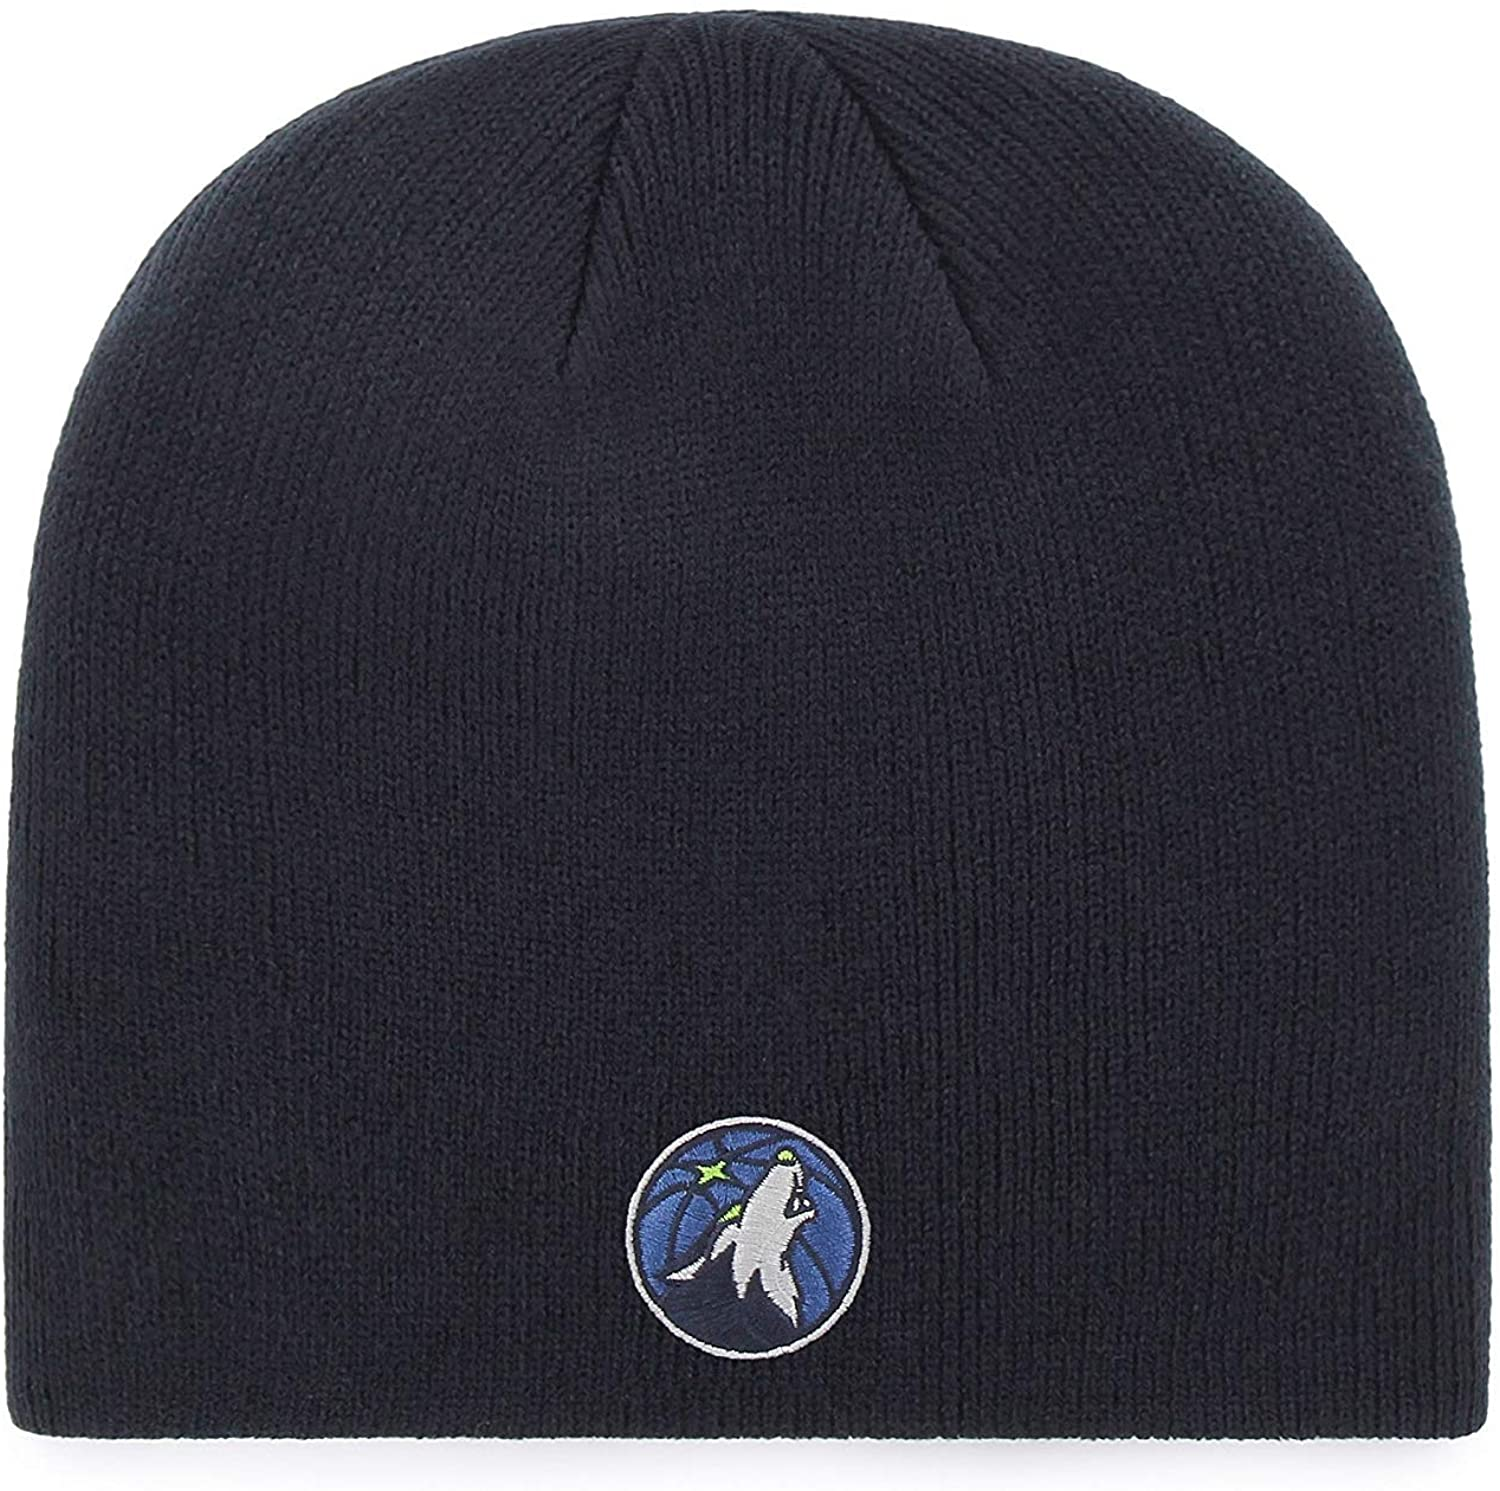 '47 Brand Cuffless Beanie Hat - NBA Knit Skull Toque Cap